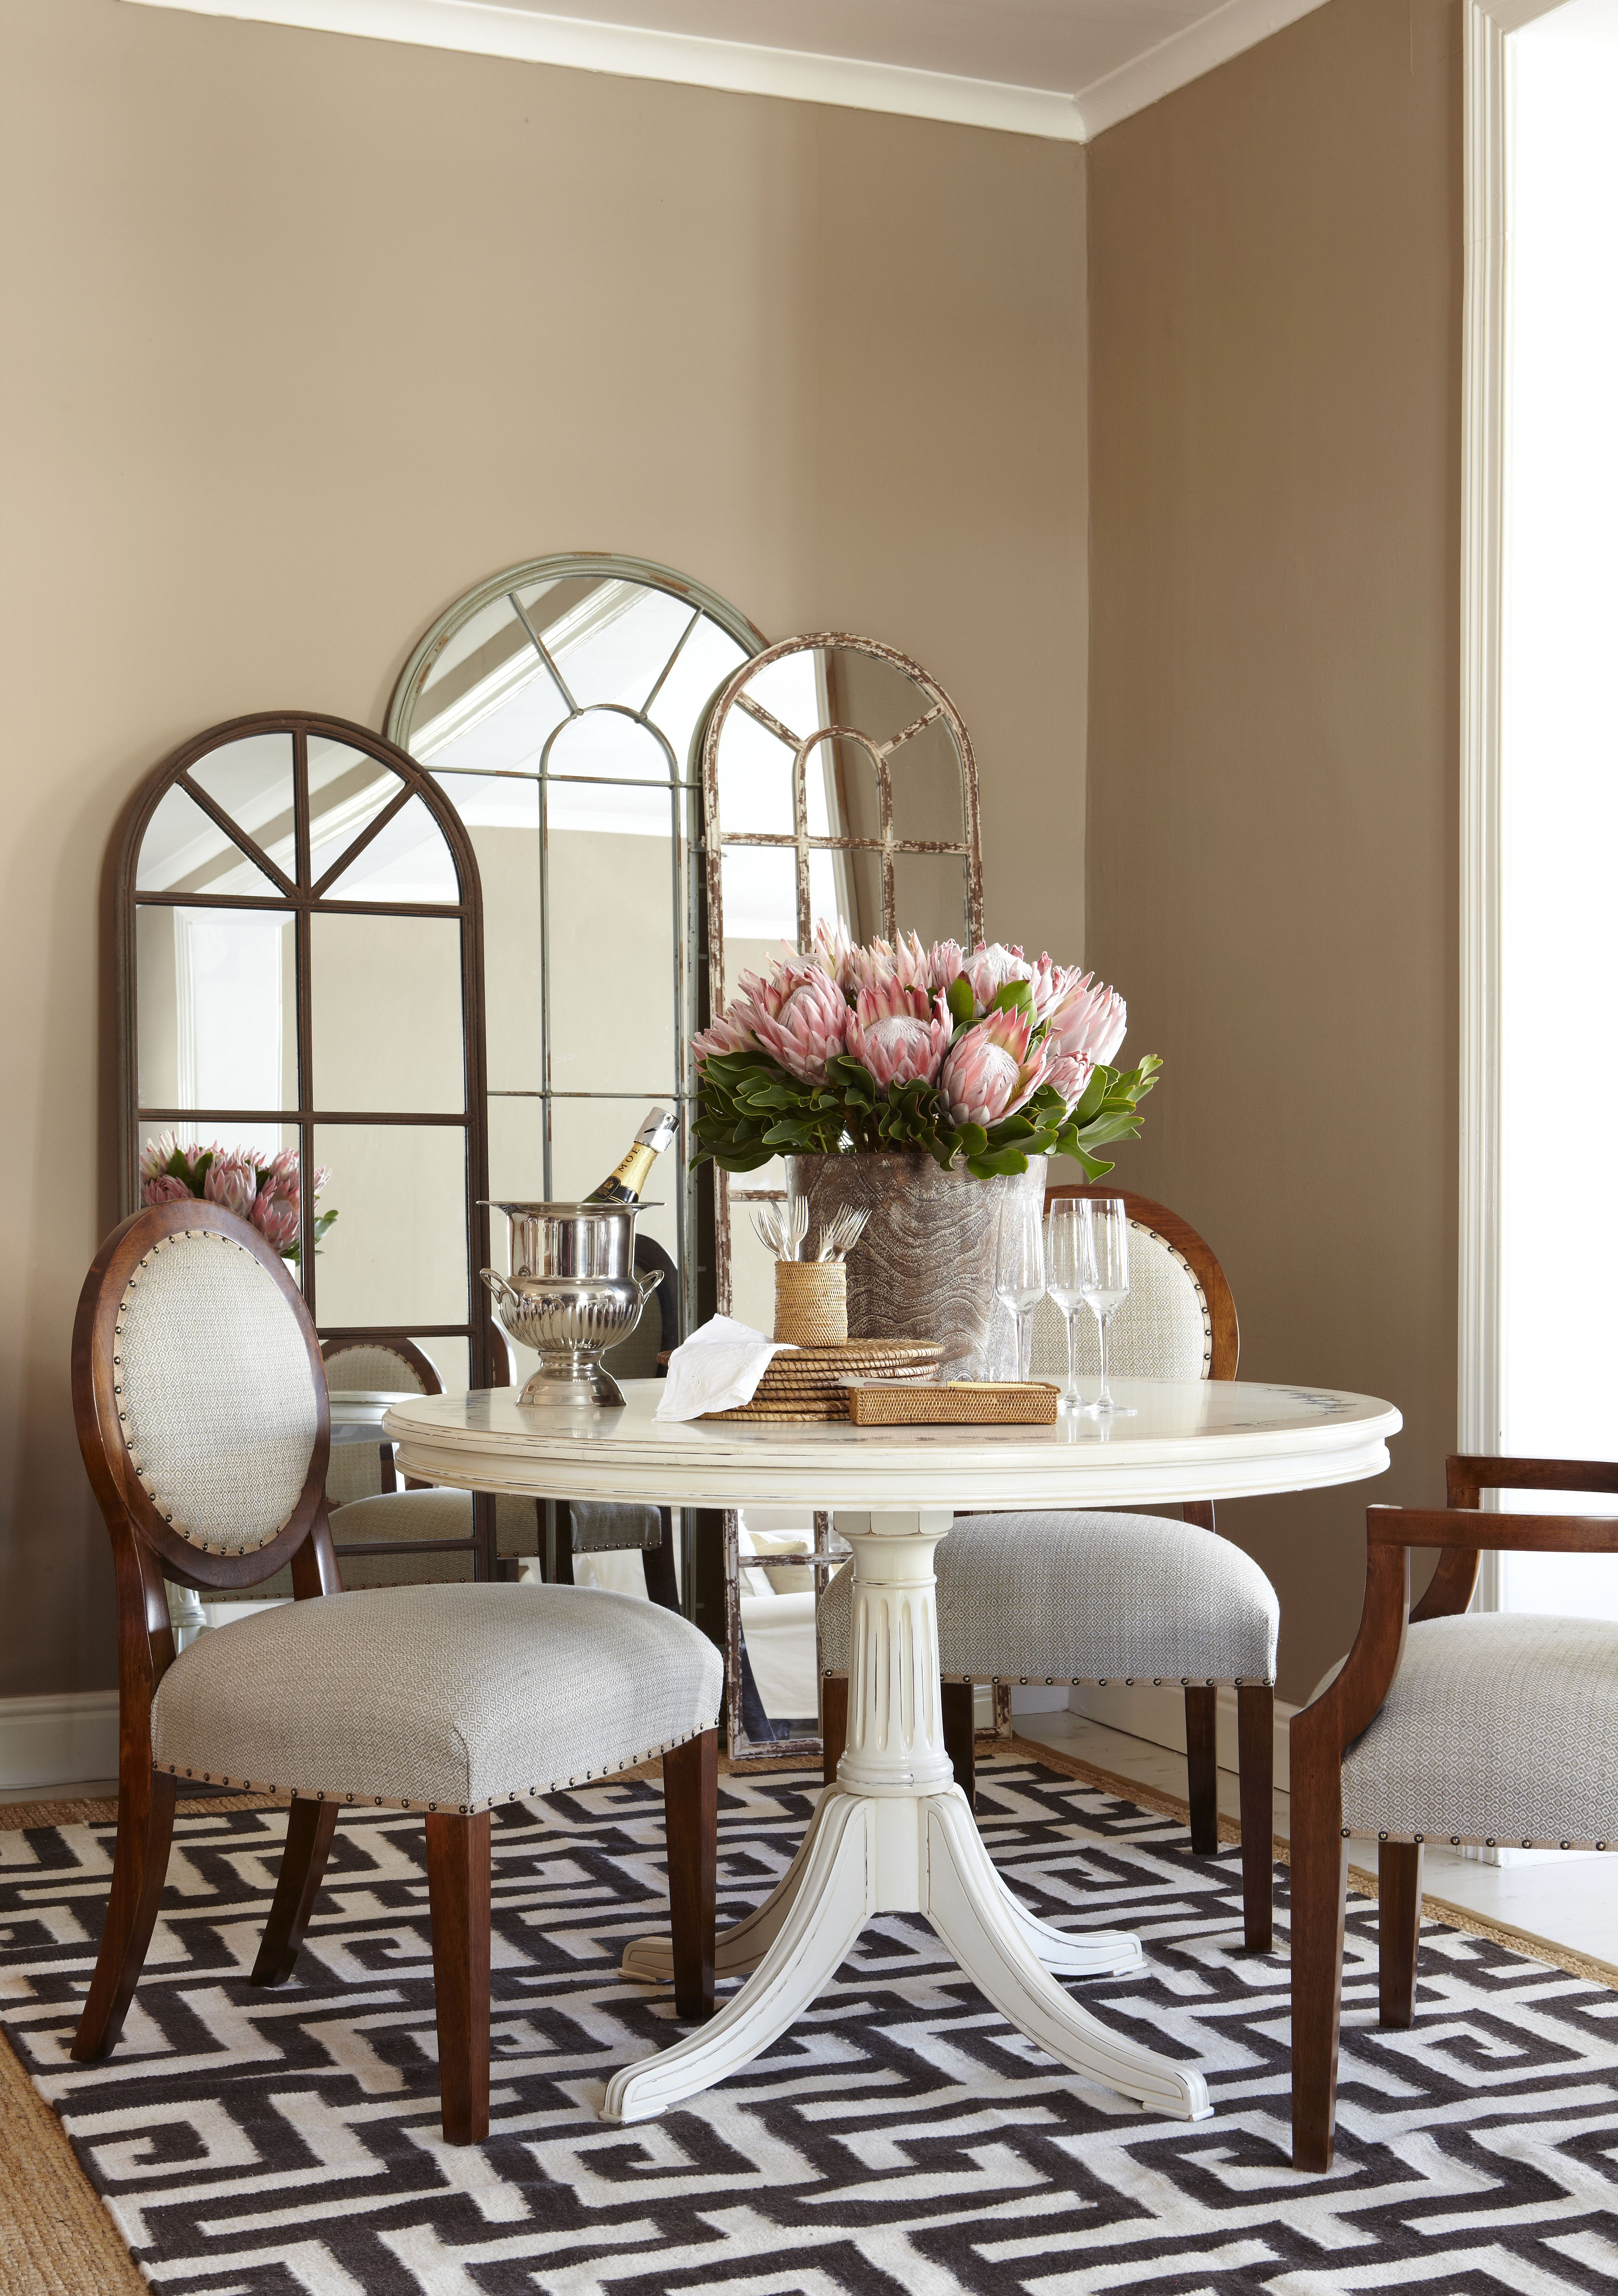 Classic Revivals dining setting Med res